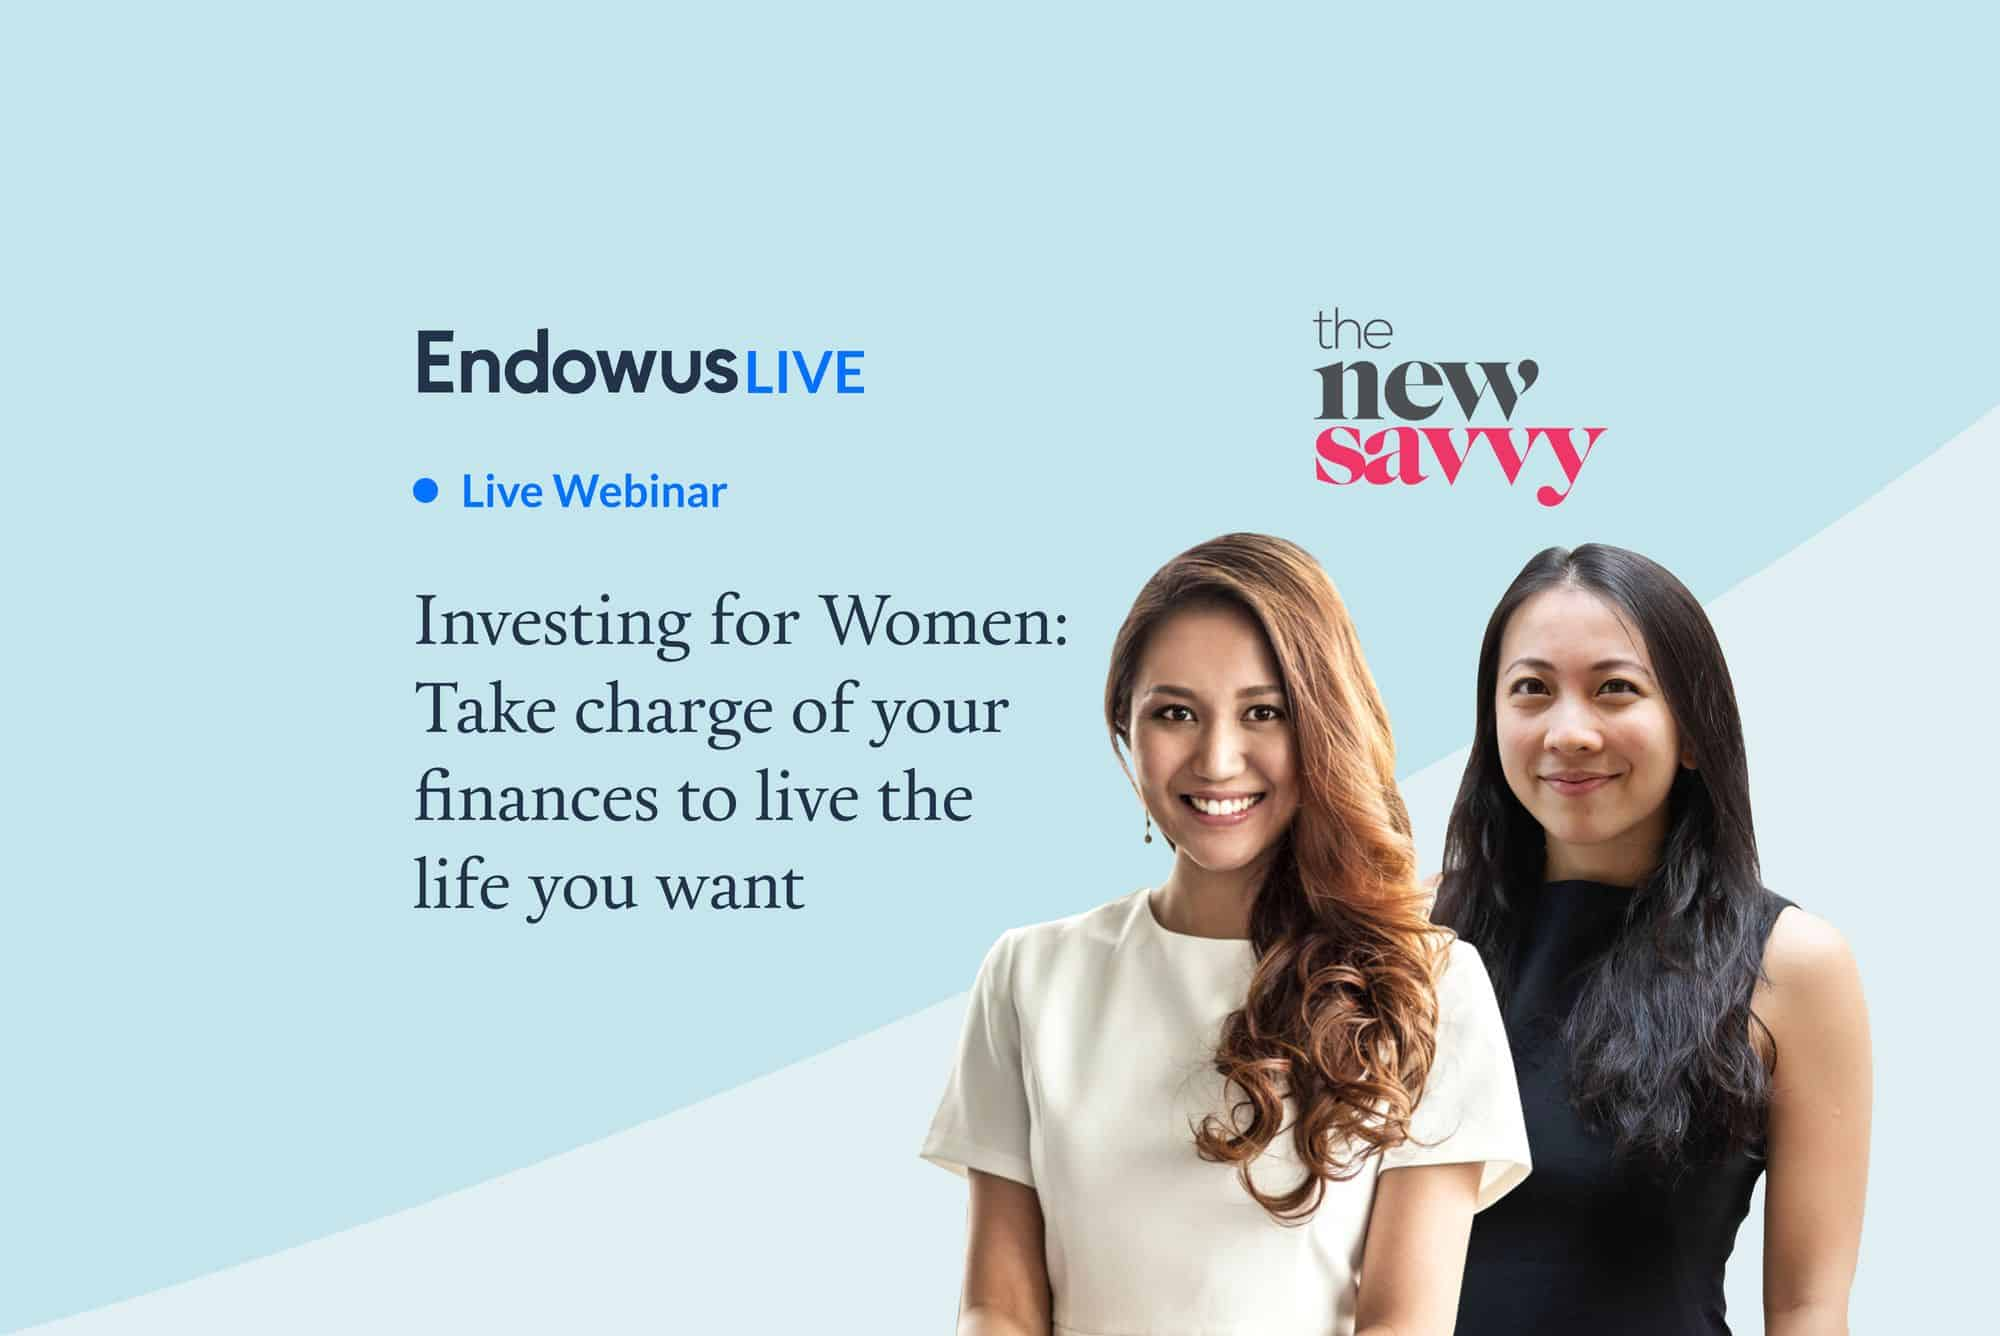 Webinar: Investing for women: Take charge of your finances to live the life you want